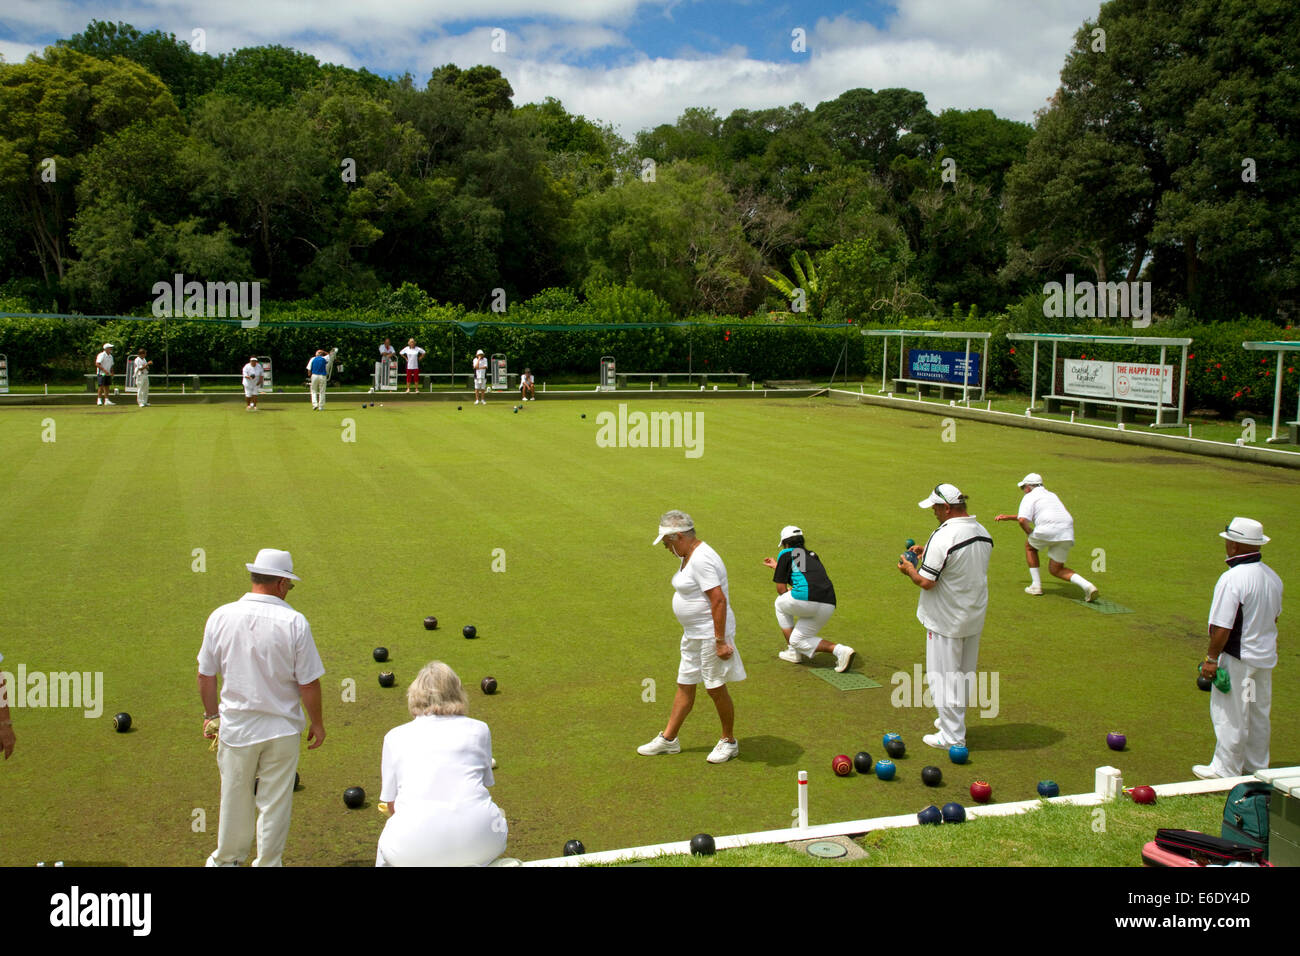 Lawn bowling at Waitangi in the Bay of Islands, North Island, New Zealand. - Stock Image